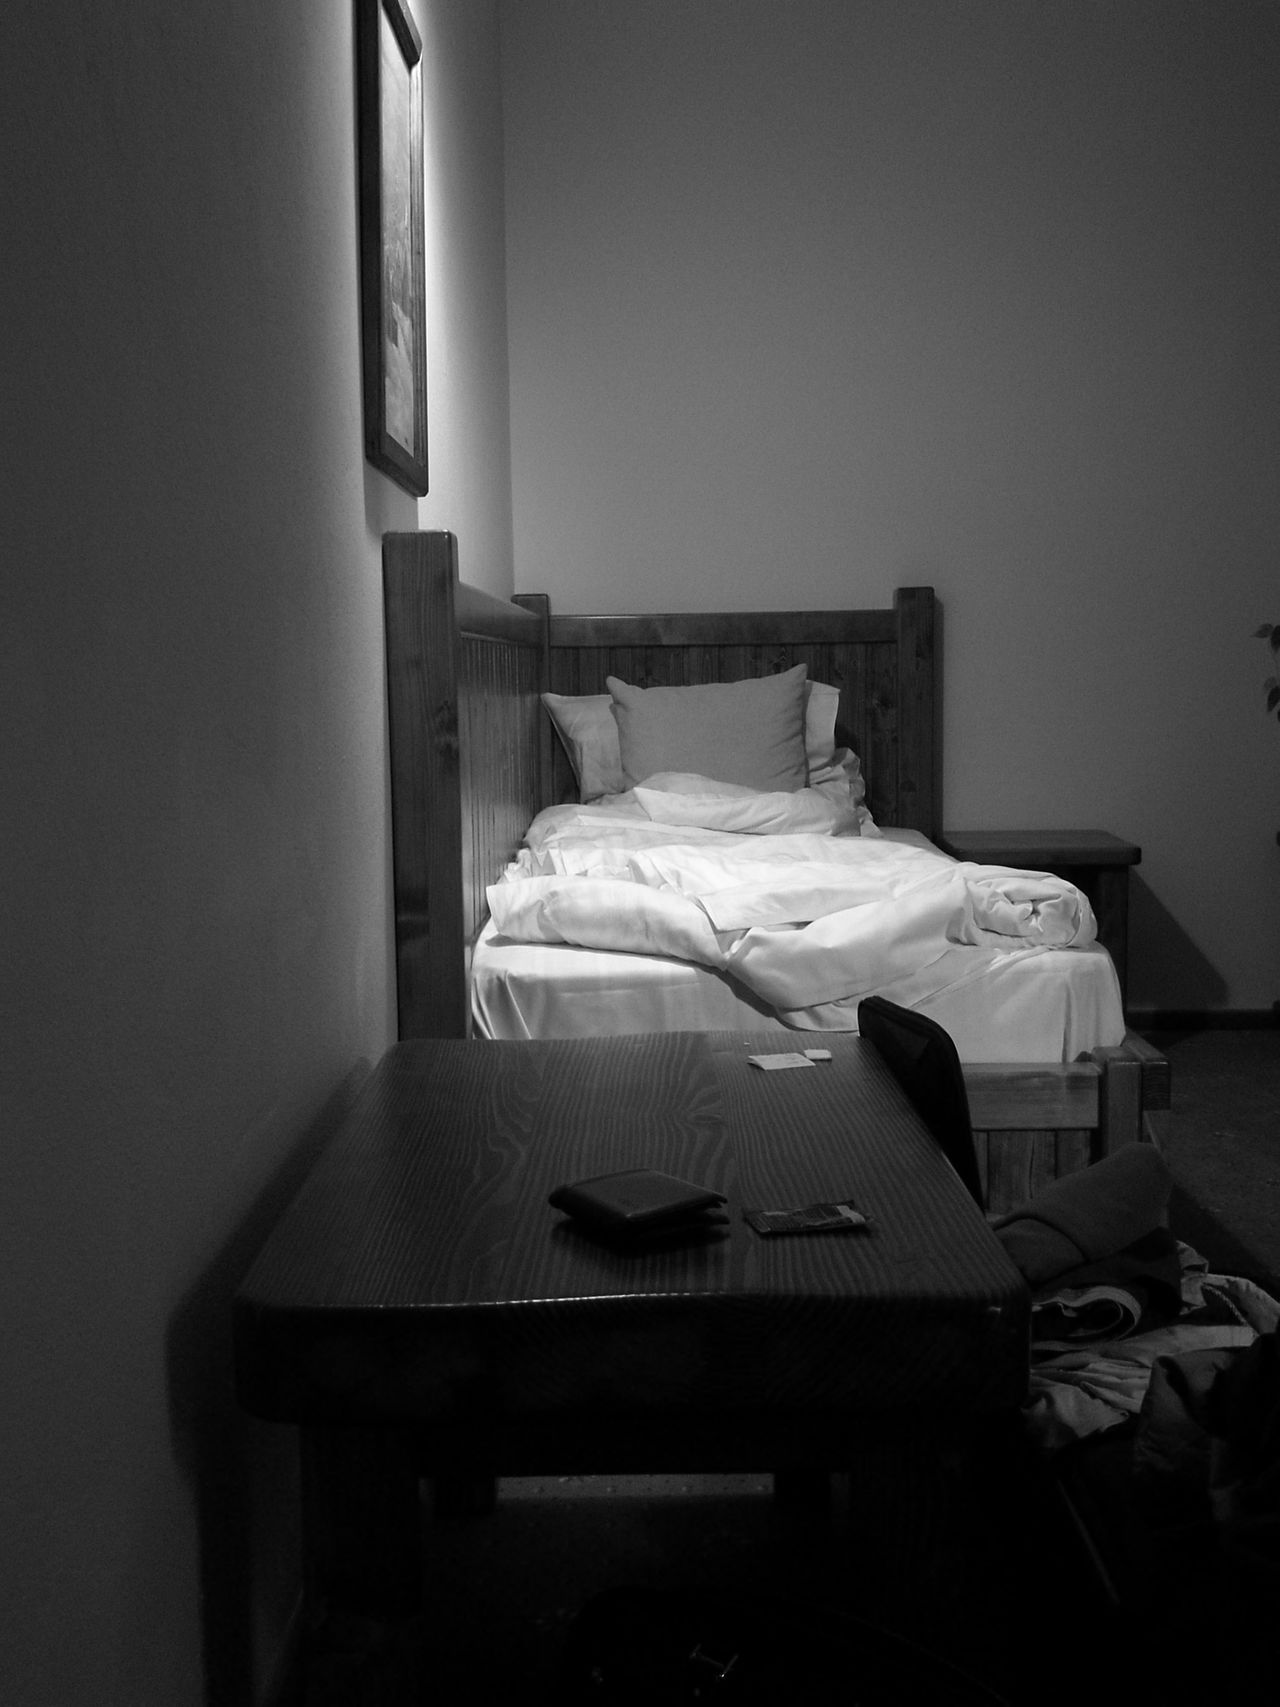 Bed Single Student's Life Wallet Sleeping Alone Messy Bed Blackandwhite Bad Condition Table Absence Abandoned Empty Will Be Better Hotel Room Sheets Hotel California Monochrome